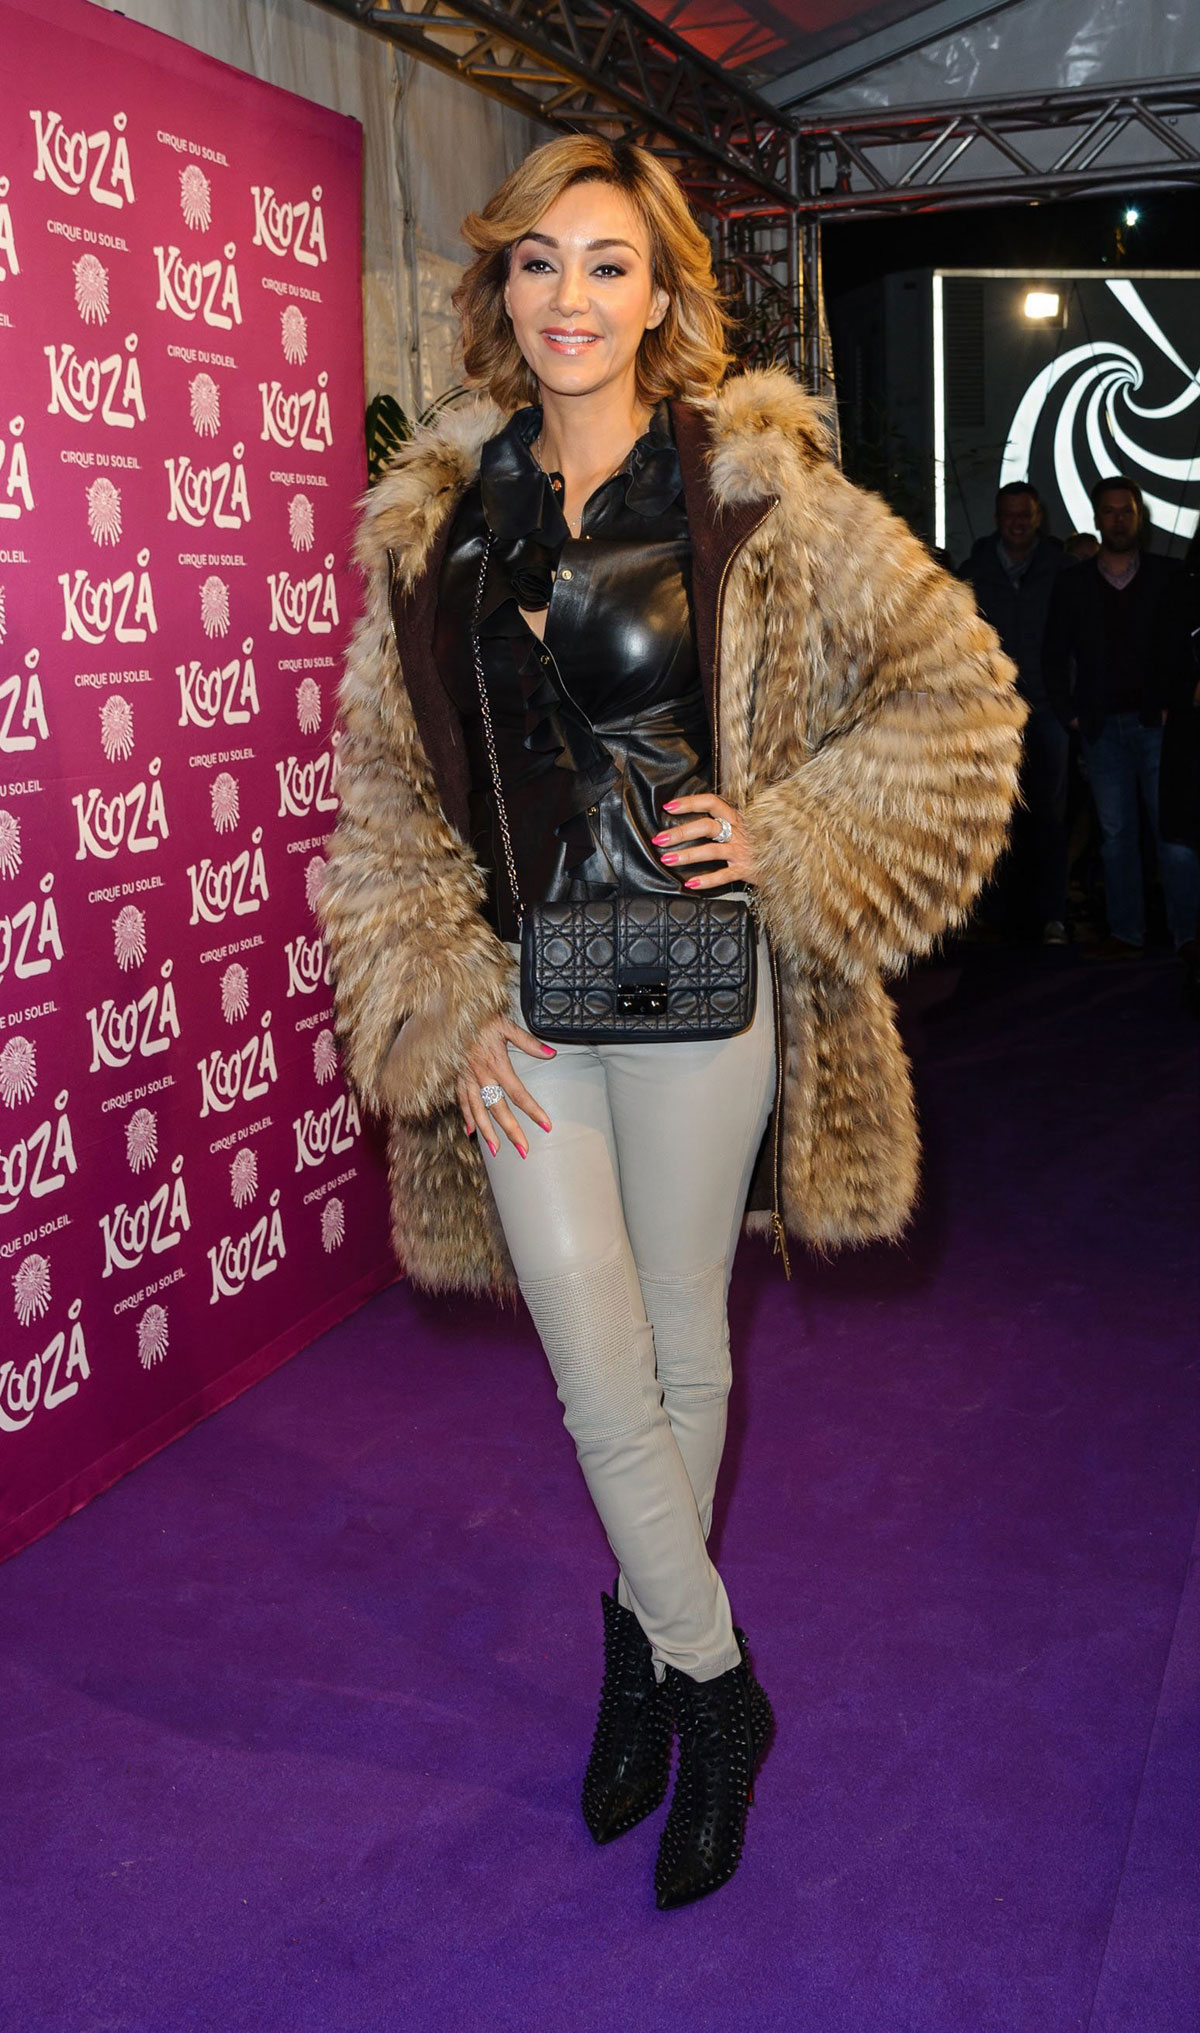 Verona Pooth At Premiere Cirque Du Soleil Kooza Leather